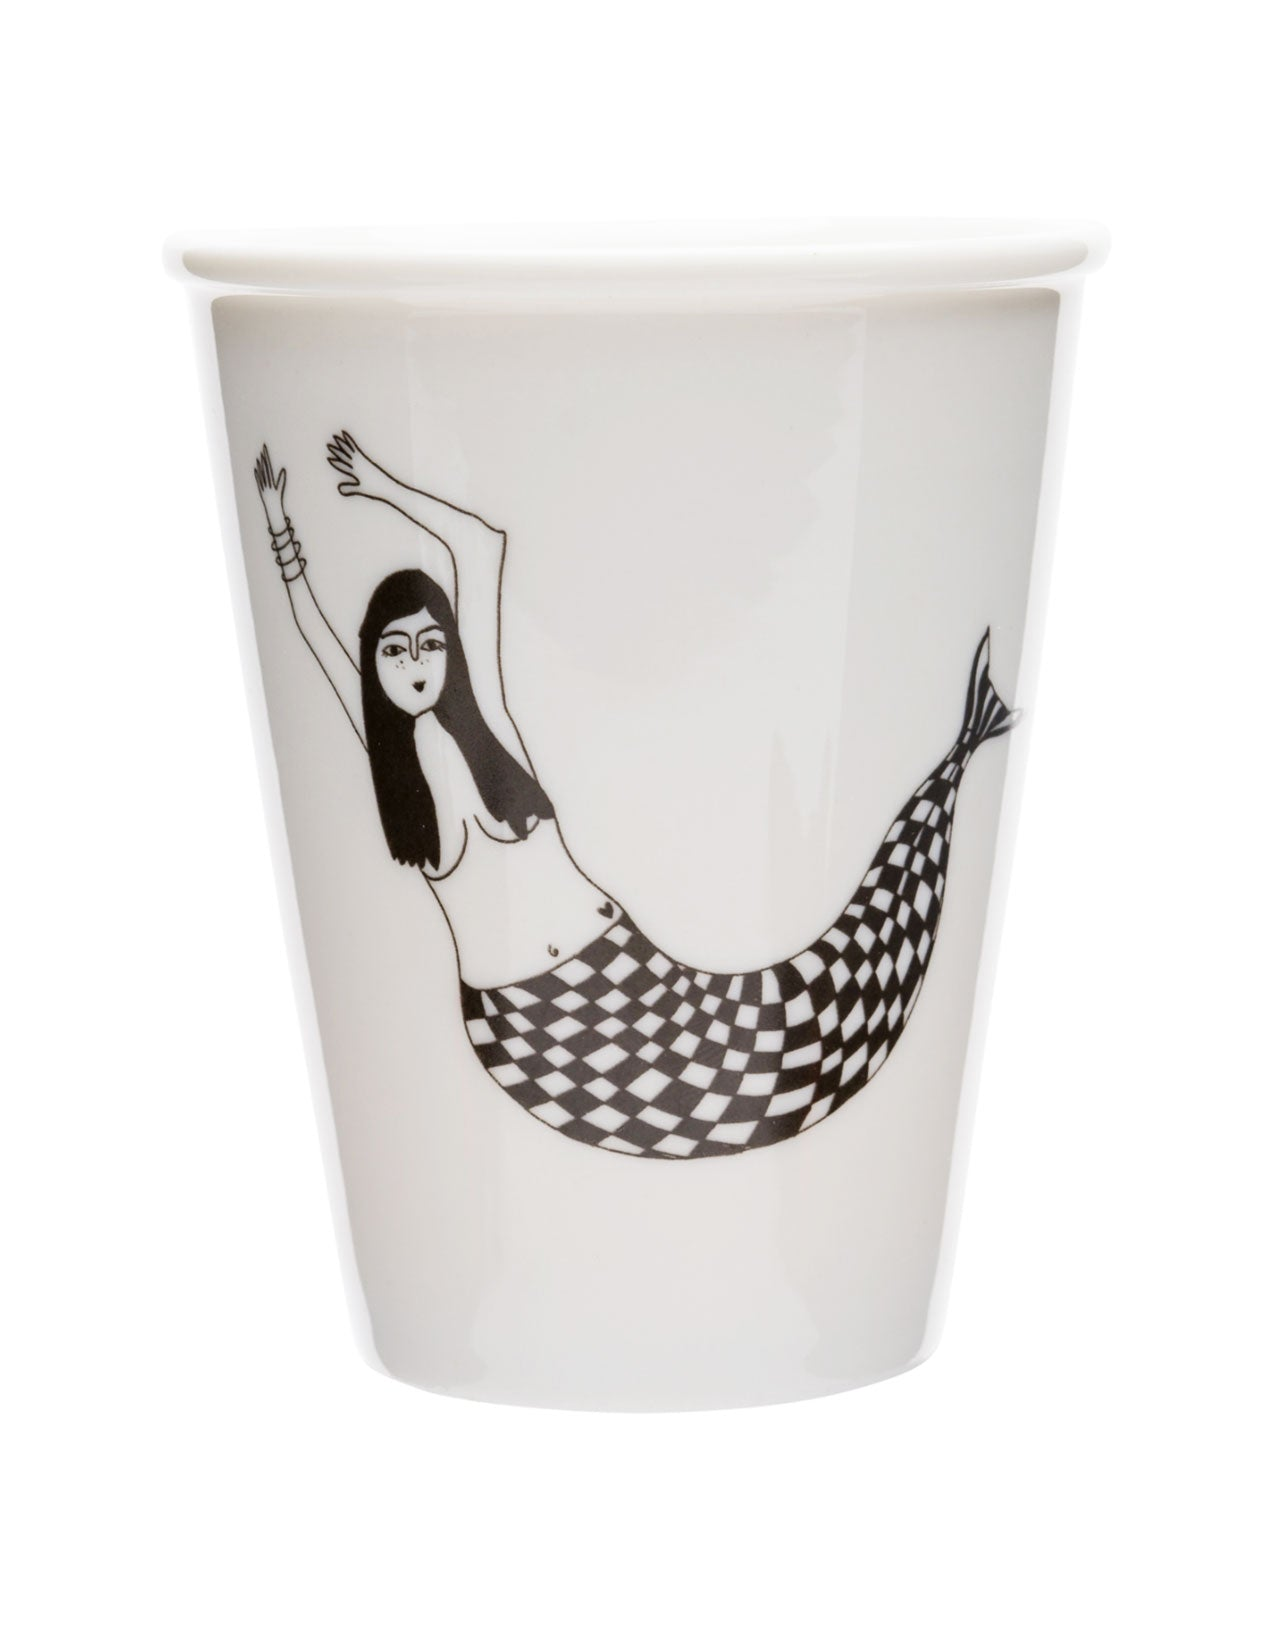 Tasse Mermaid Martina Helen B vue de face